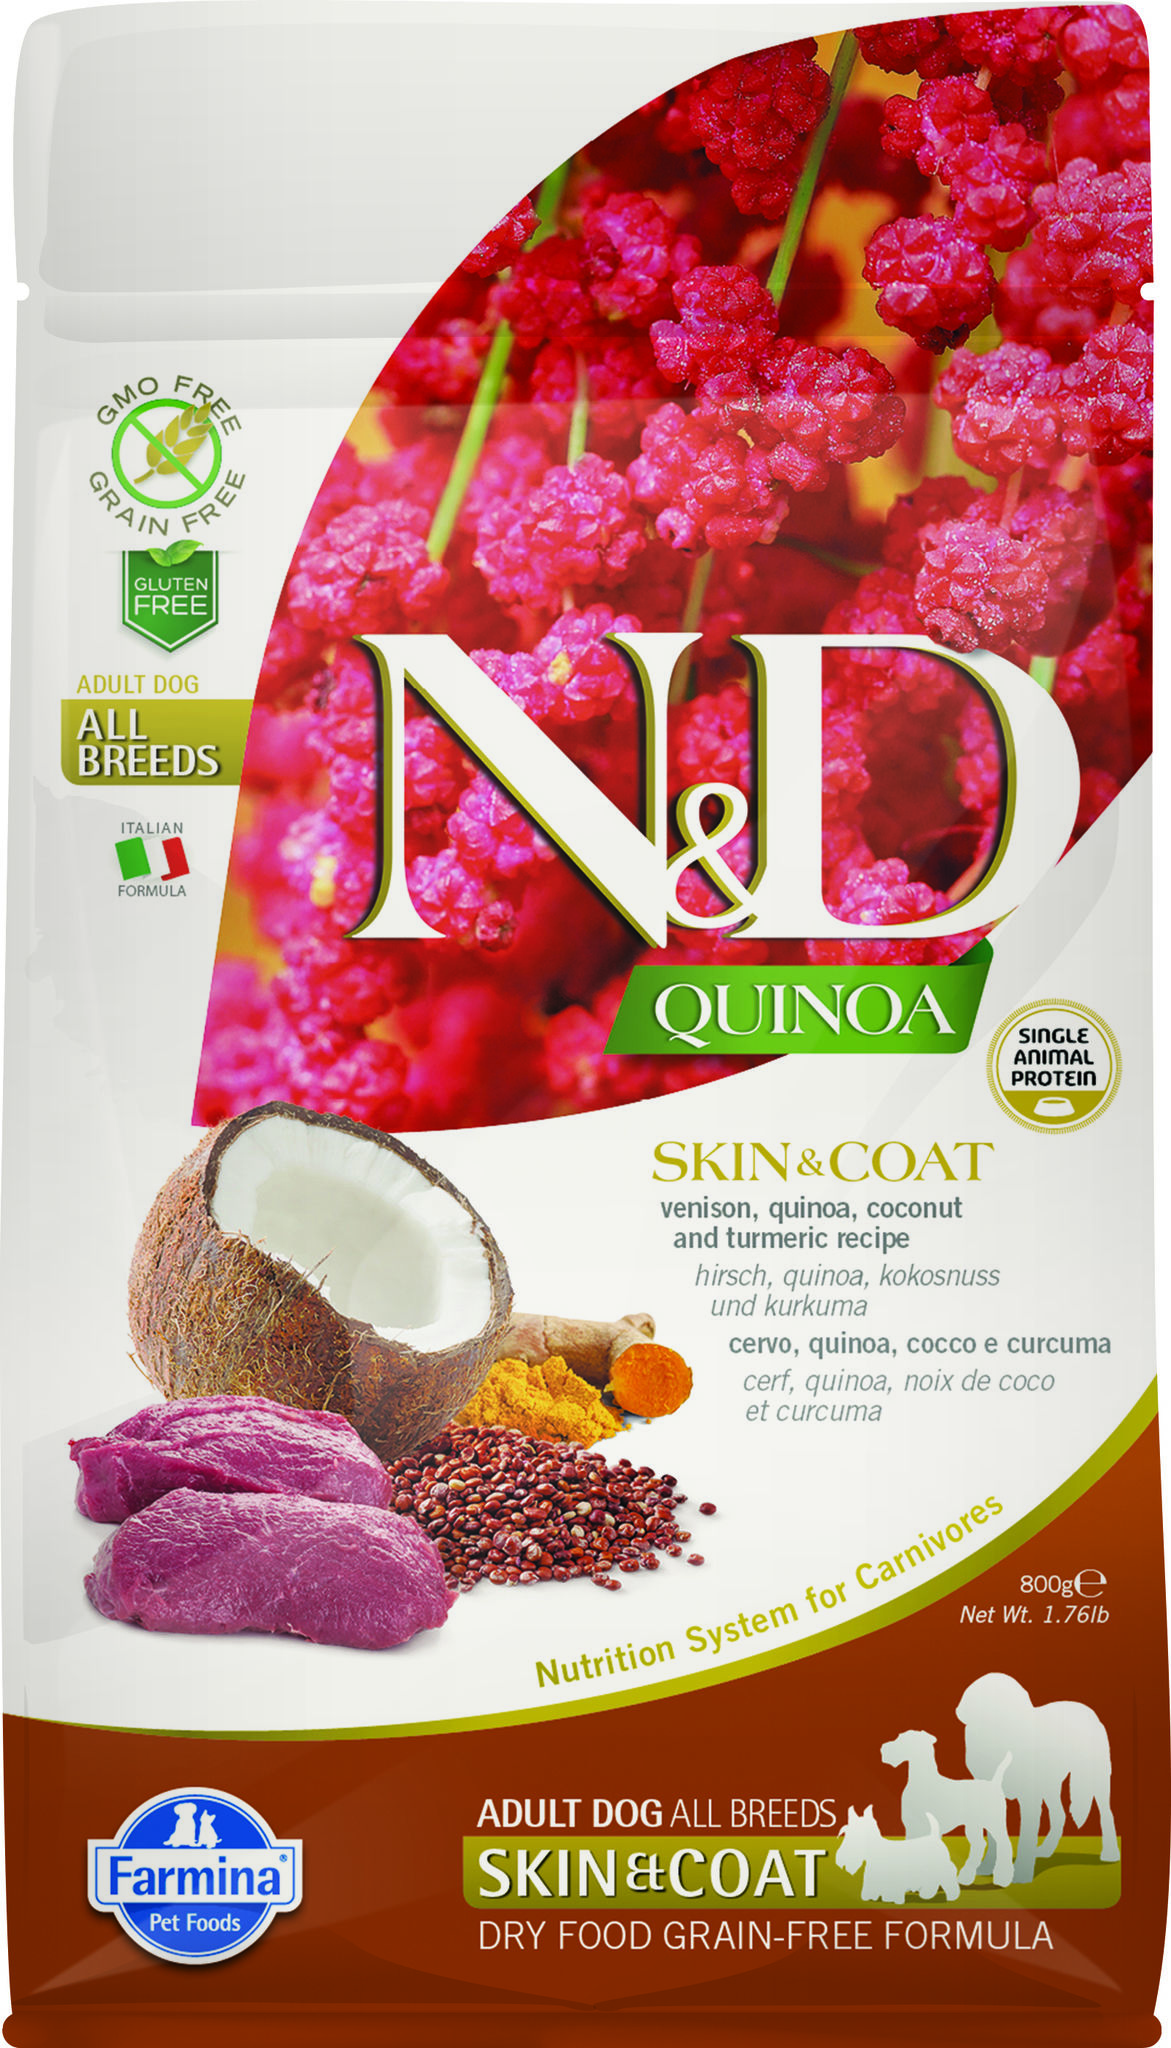 Фармина N&D QUINOA SKIN&COAT VENISON Adult 7кг Беззерн. корм д/собак киноа/олен.Здор.кож.и шерс.